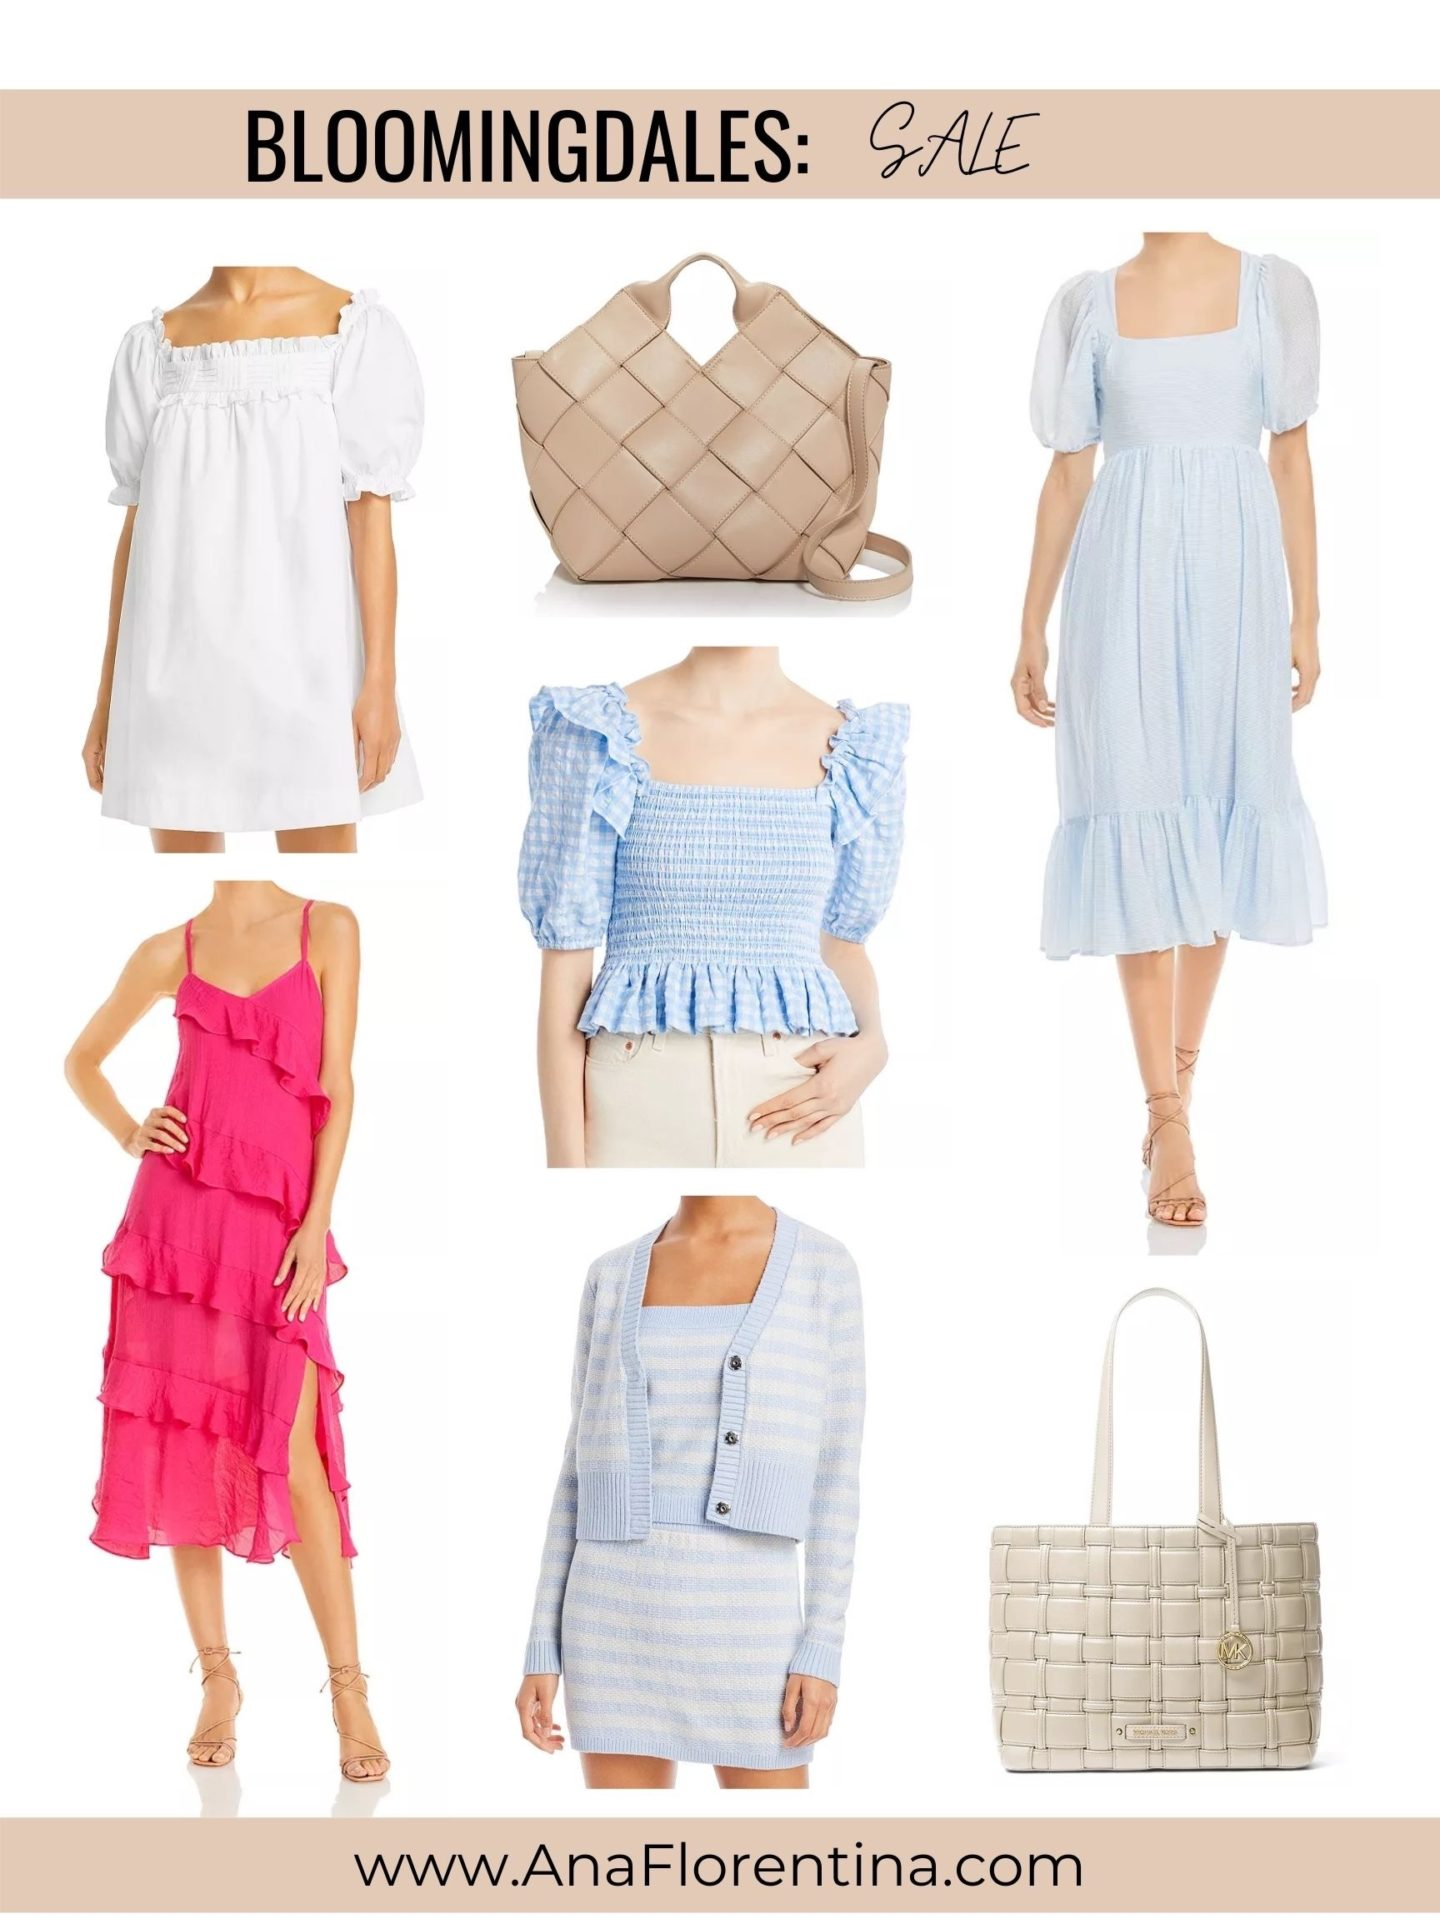 Ana Florentina Bloomingdales friends and family sale